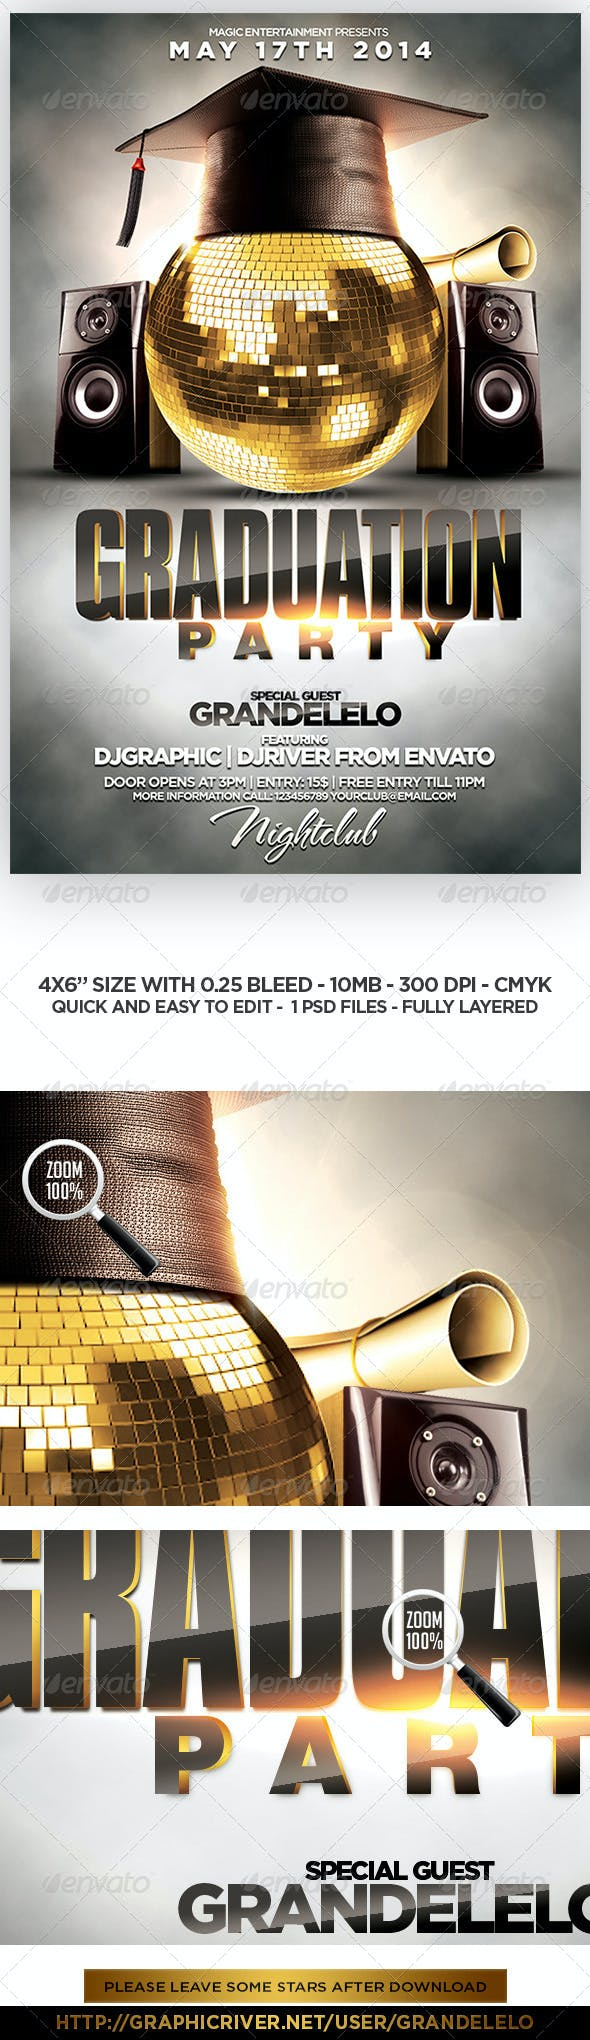 Graduation Party Flyer Template By Grandelelo Graphicriver